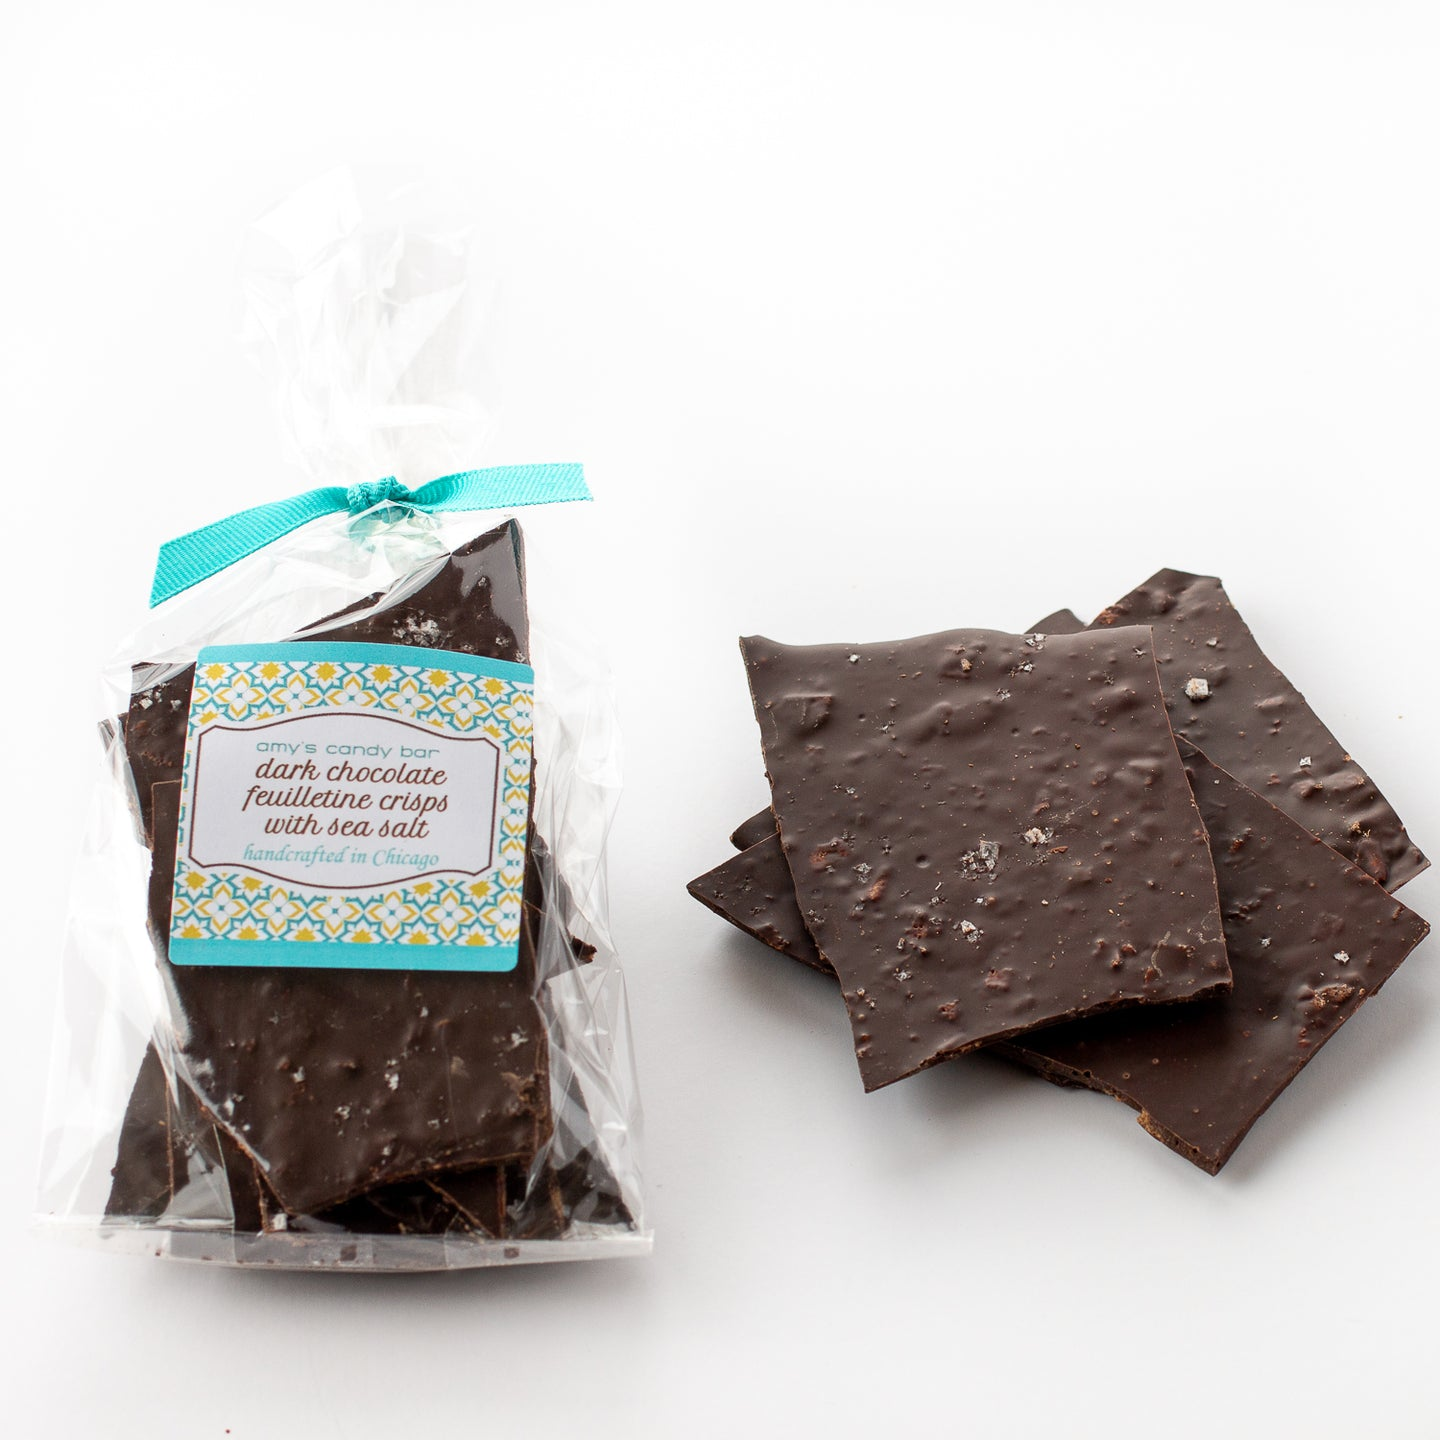 Dark Chocolate Feuilletine Crisps with Sea Salt Amy's Candy Bar Chicago